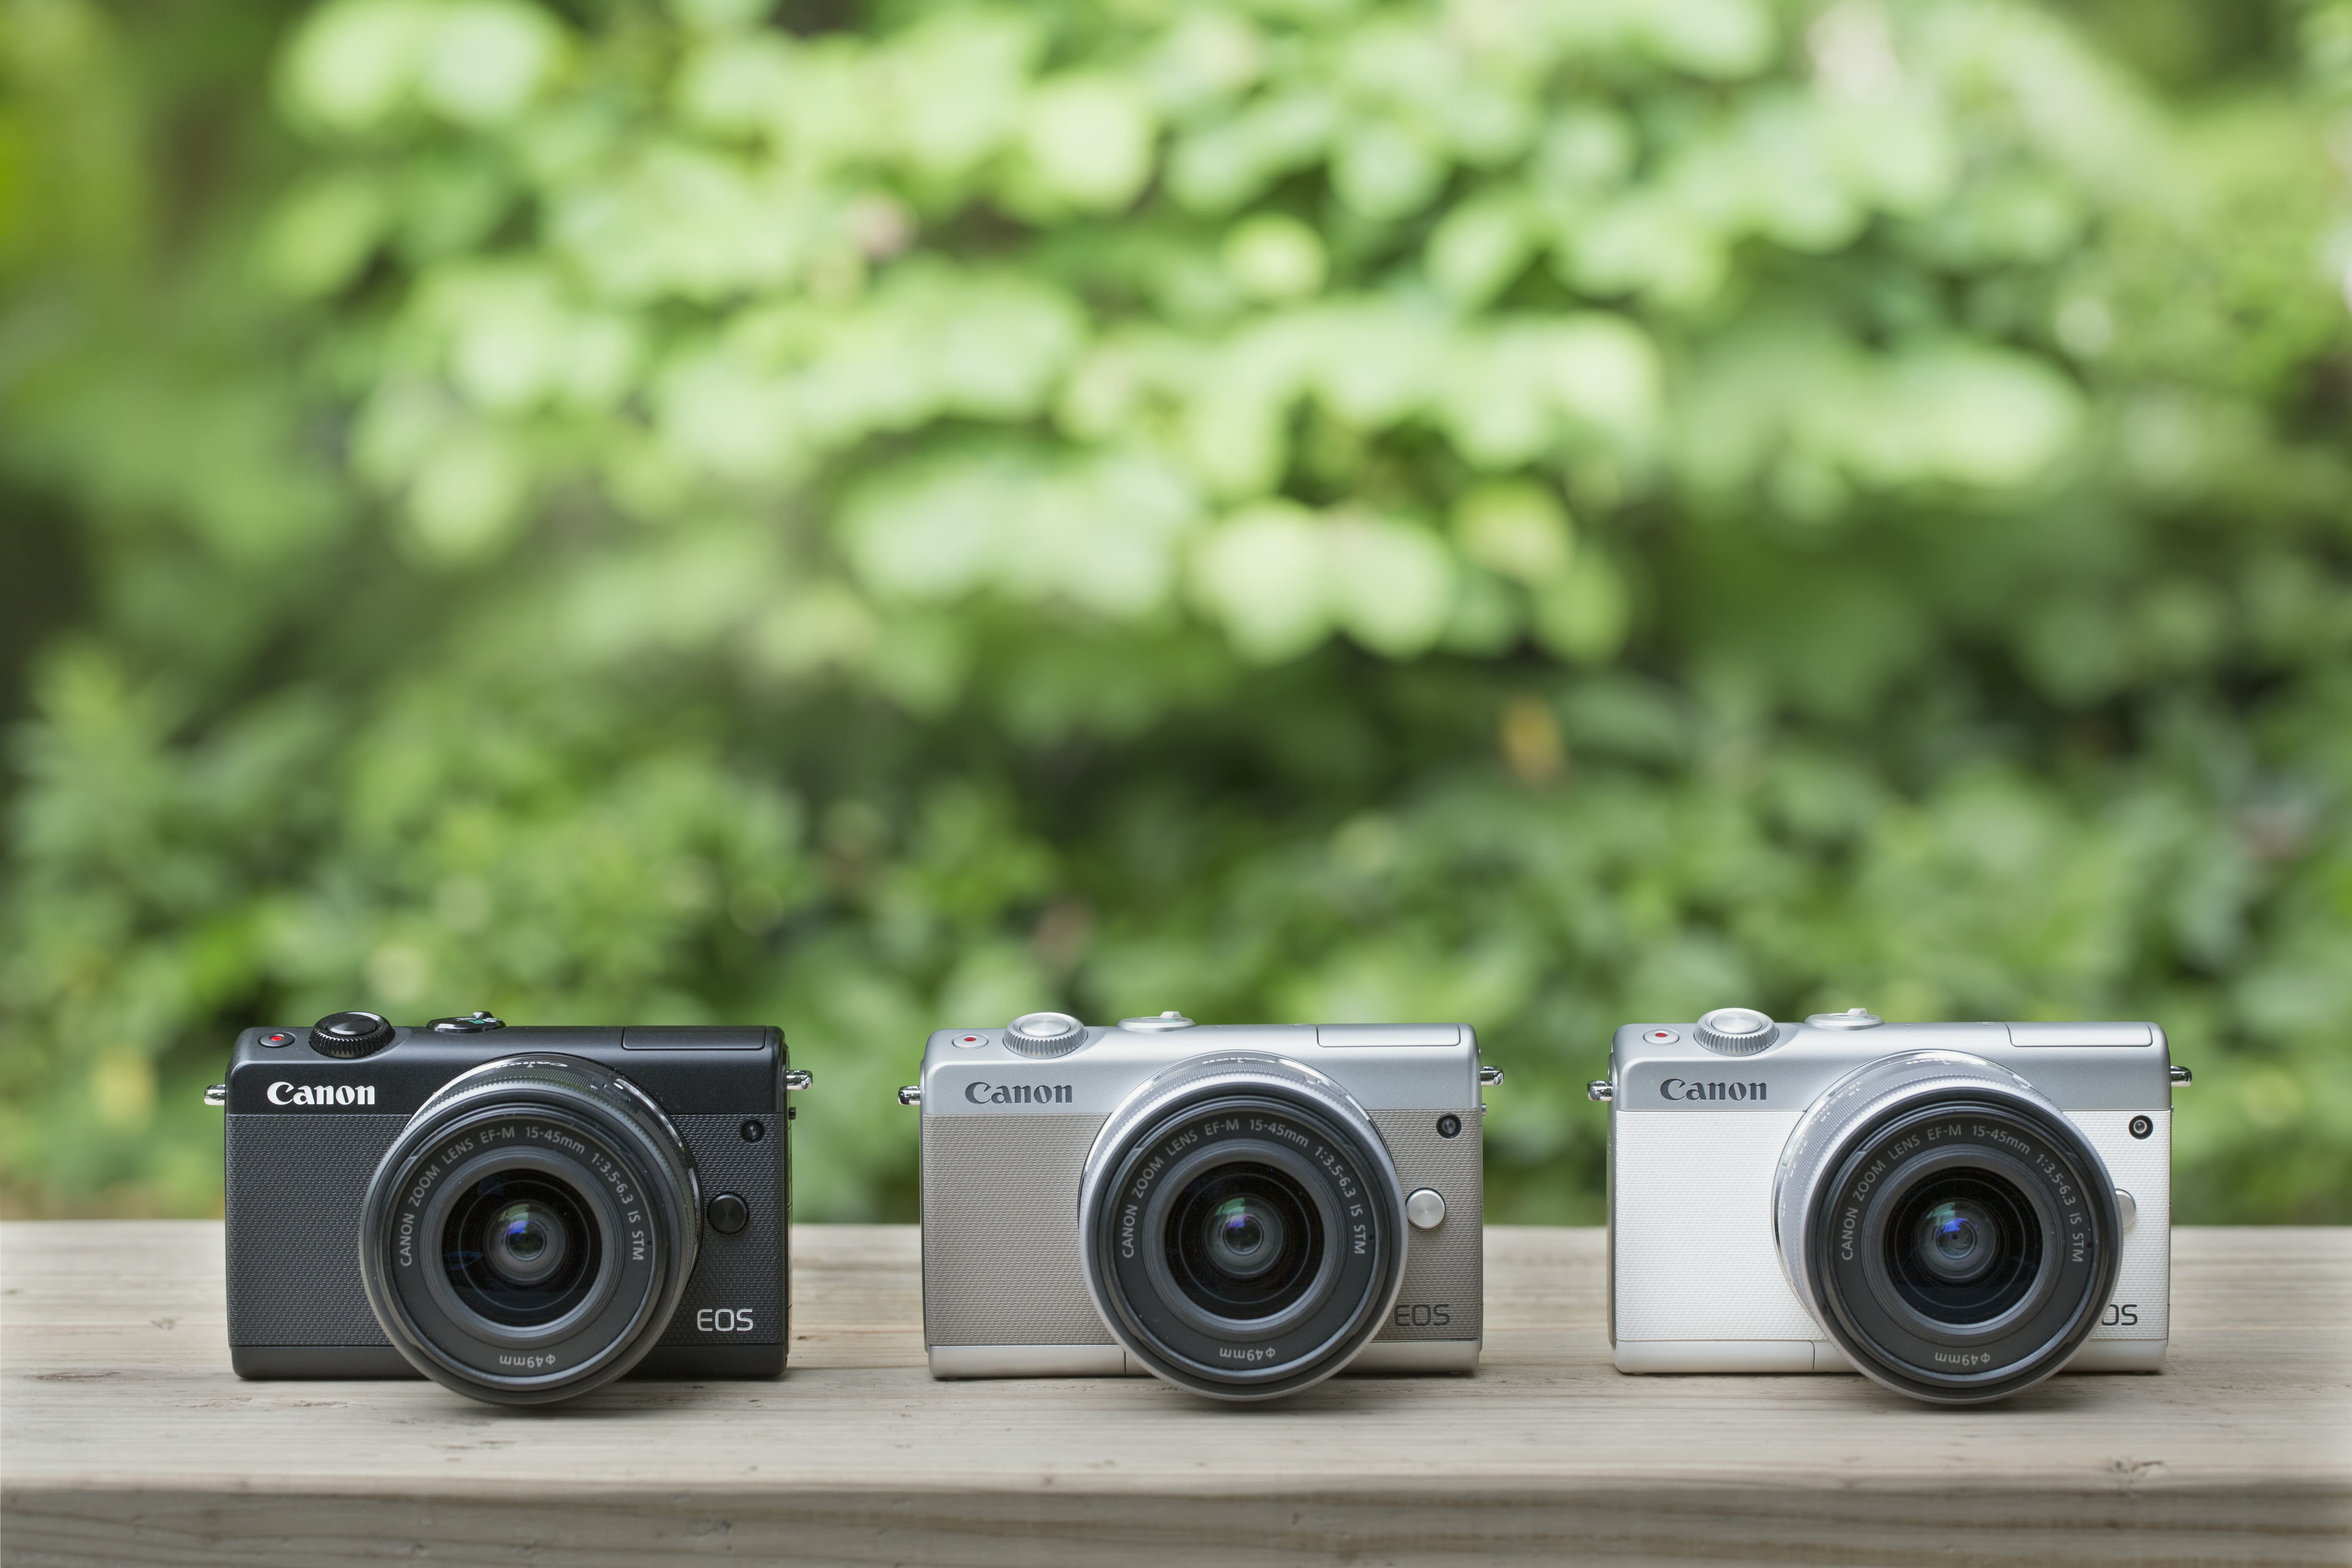 Capture The Joy of Everyday Moments with Canon's New Mirrorless EOS